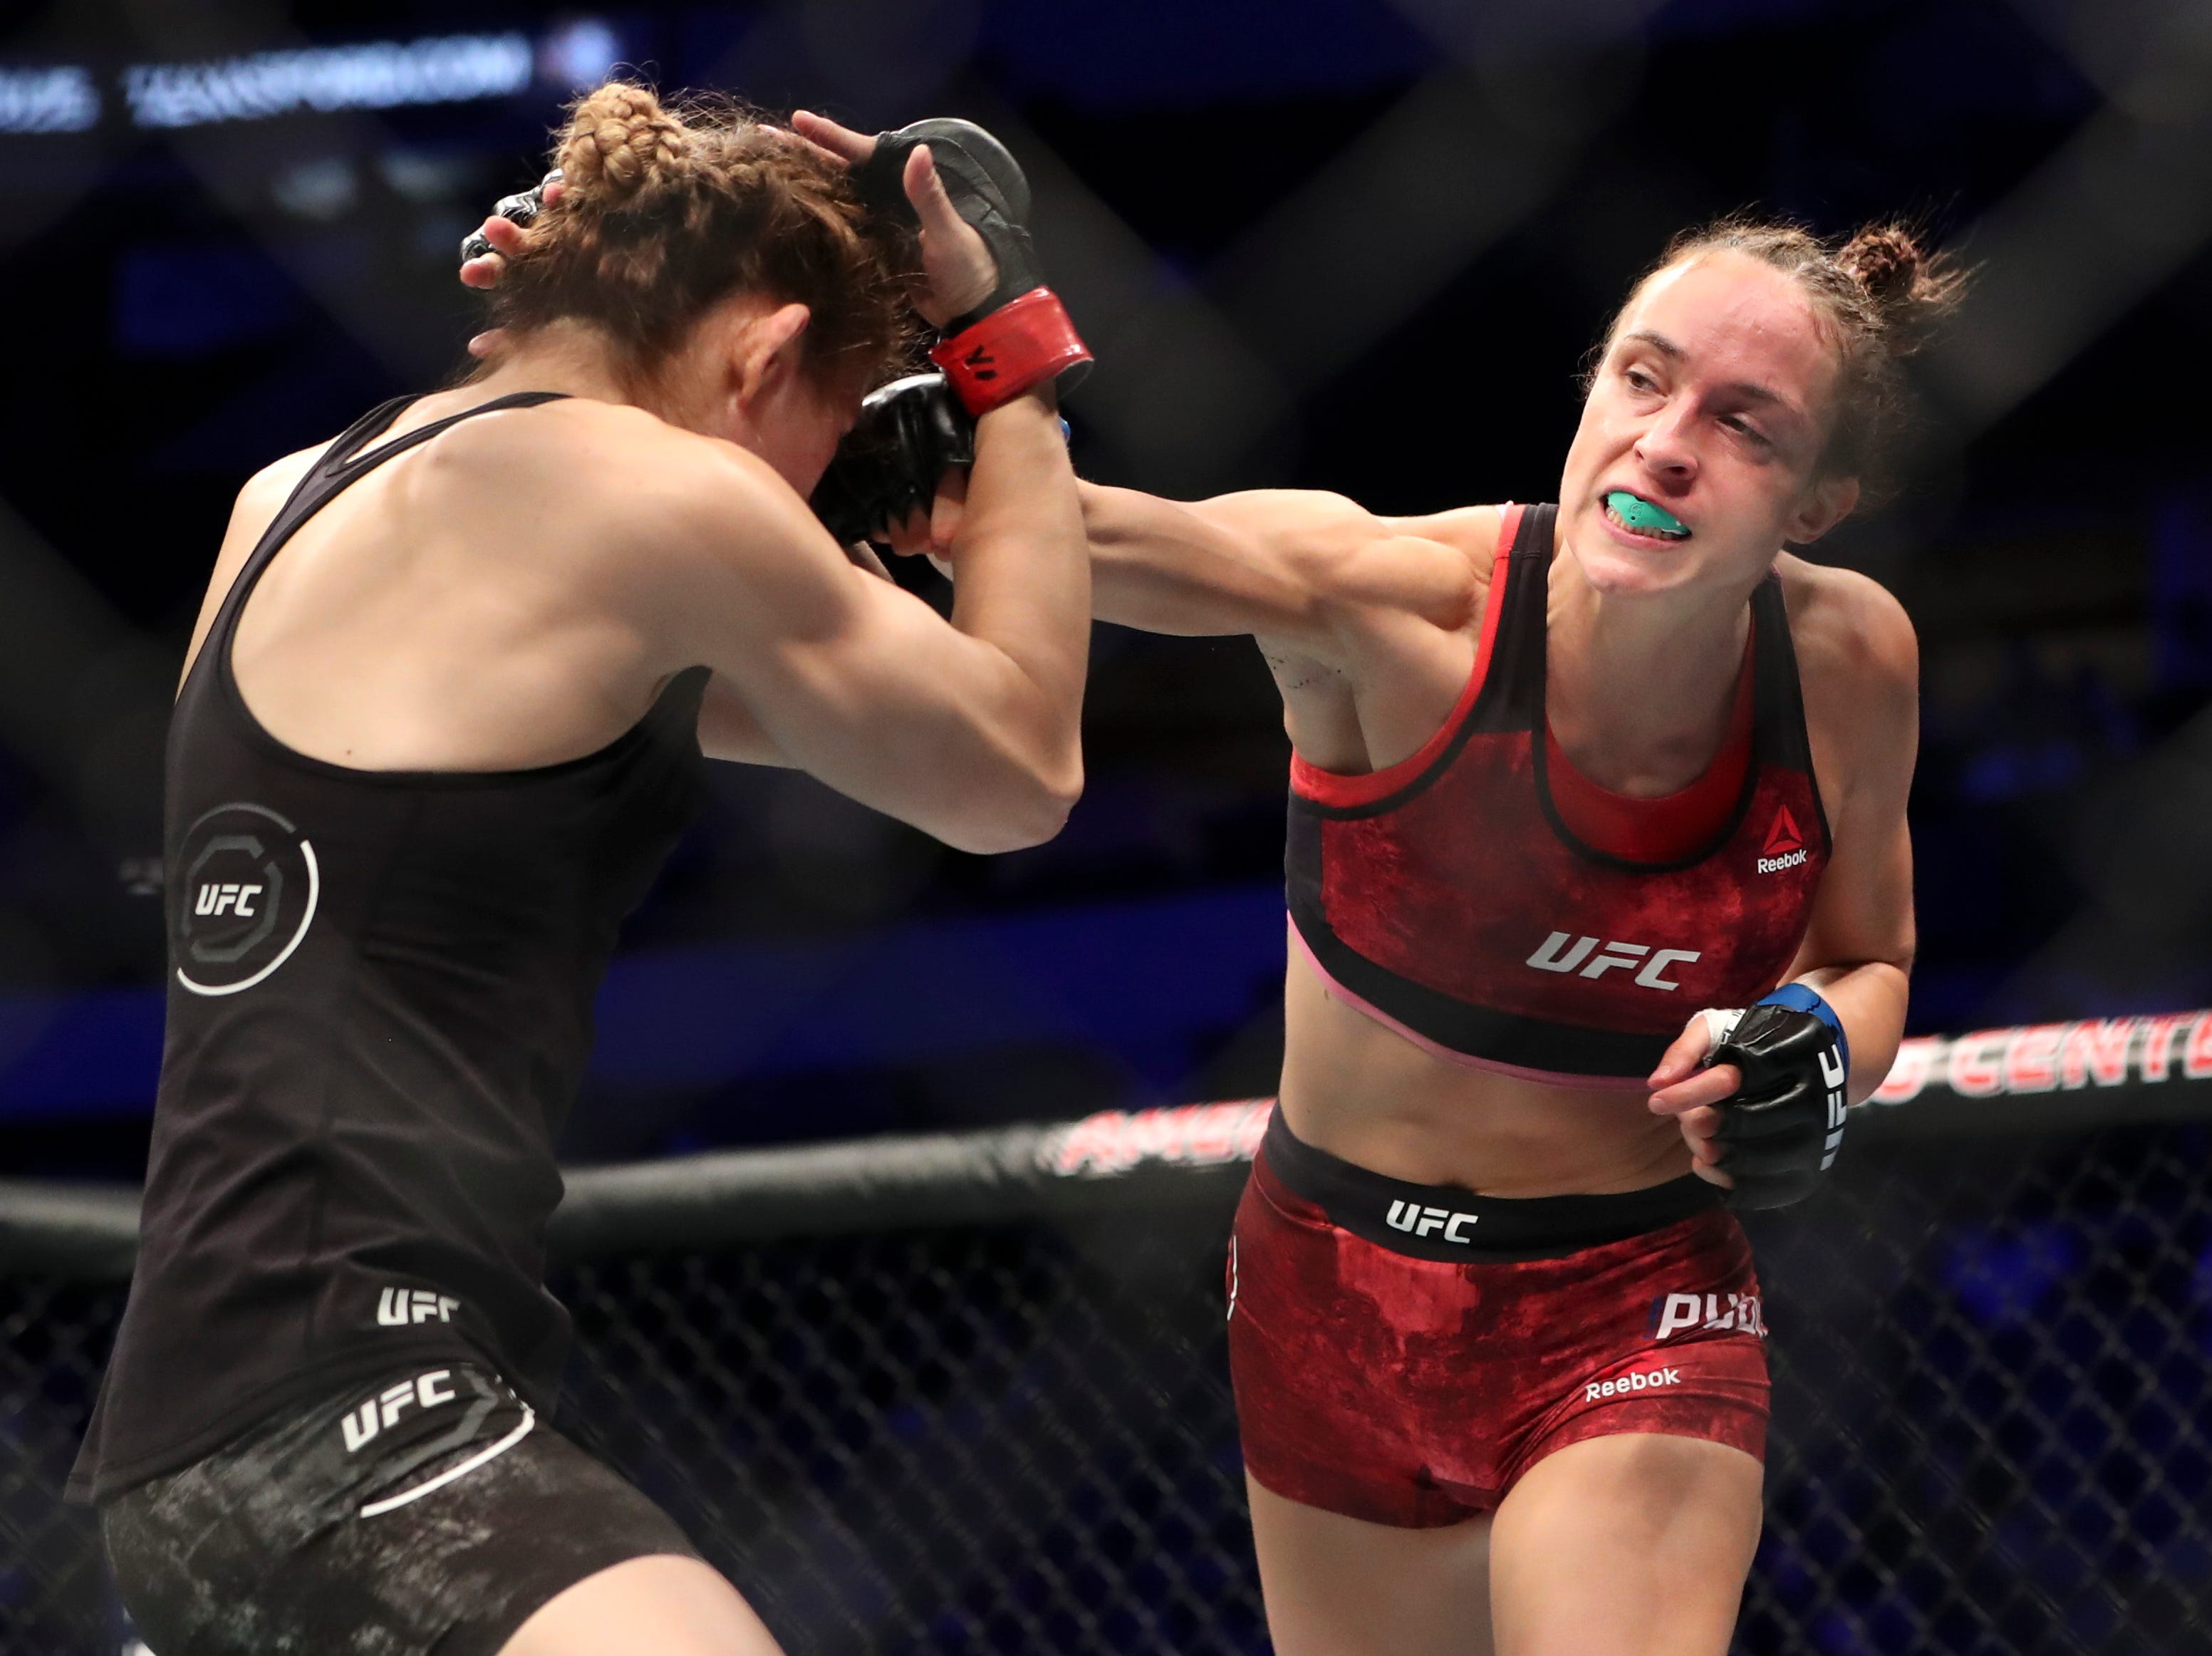 Irene Aldana (red gloves) fights Lucie Pudilova (blue gloves) during UFC 228 at American Airlines Center.